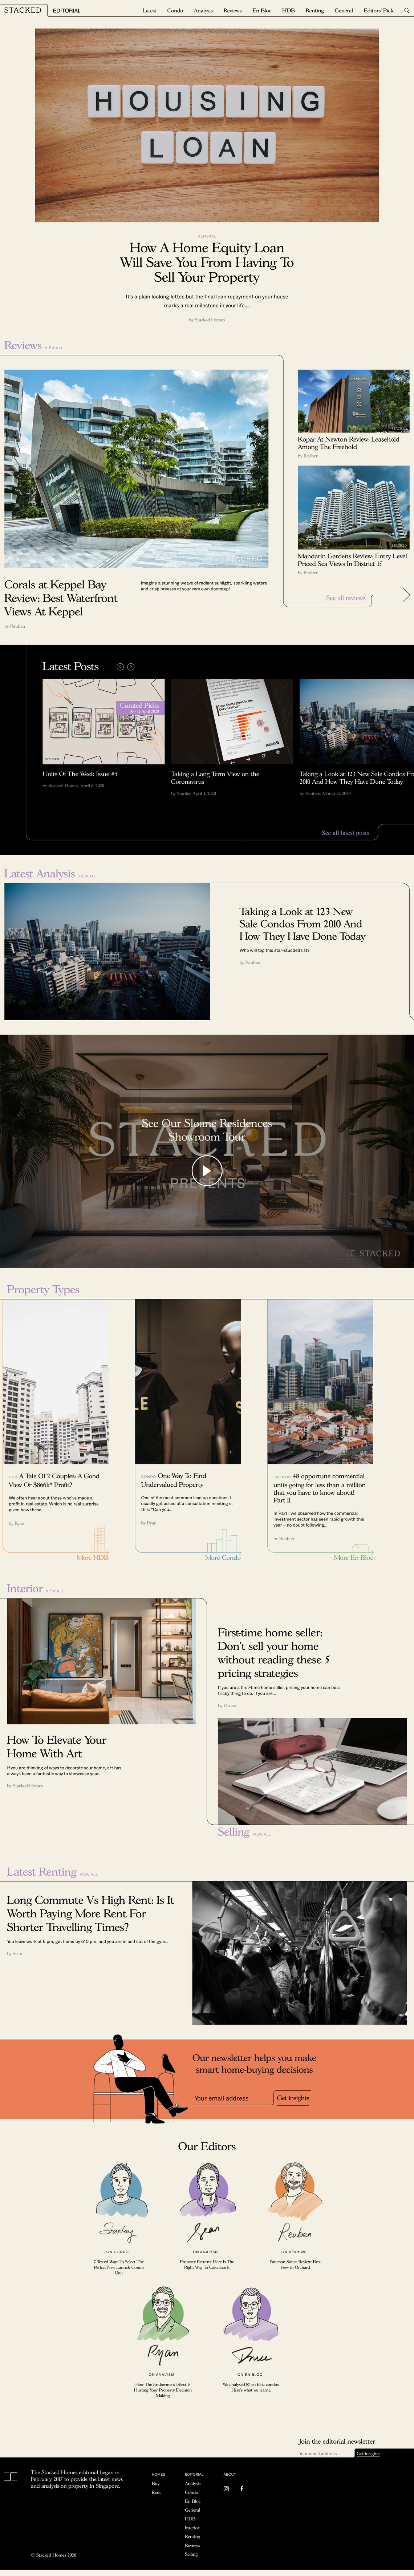 Property Blog Singapore: Tips and tricks for renters, buyers and sellers - Official Stacked Homes Blog